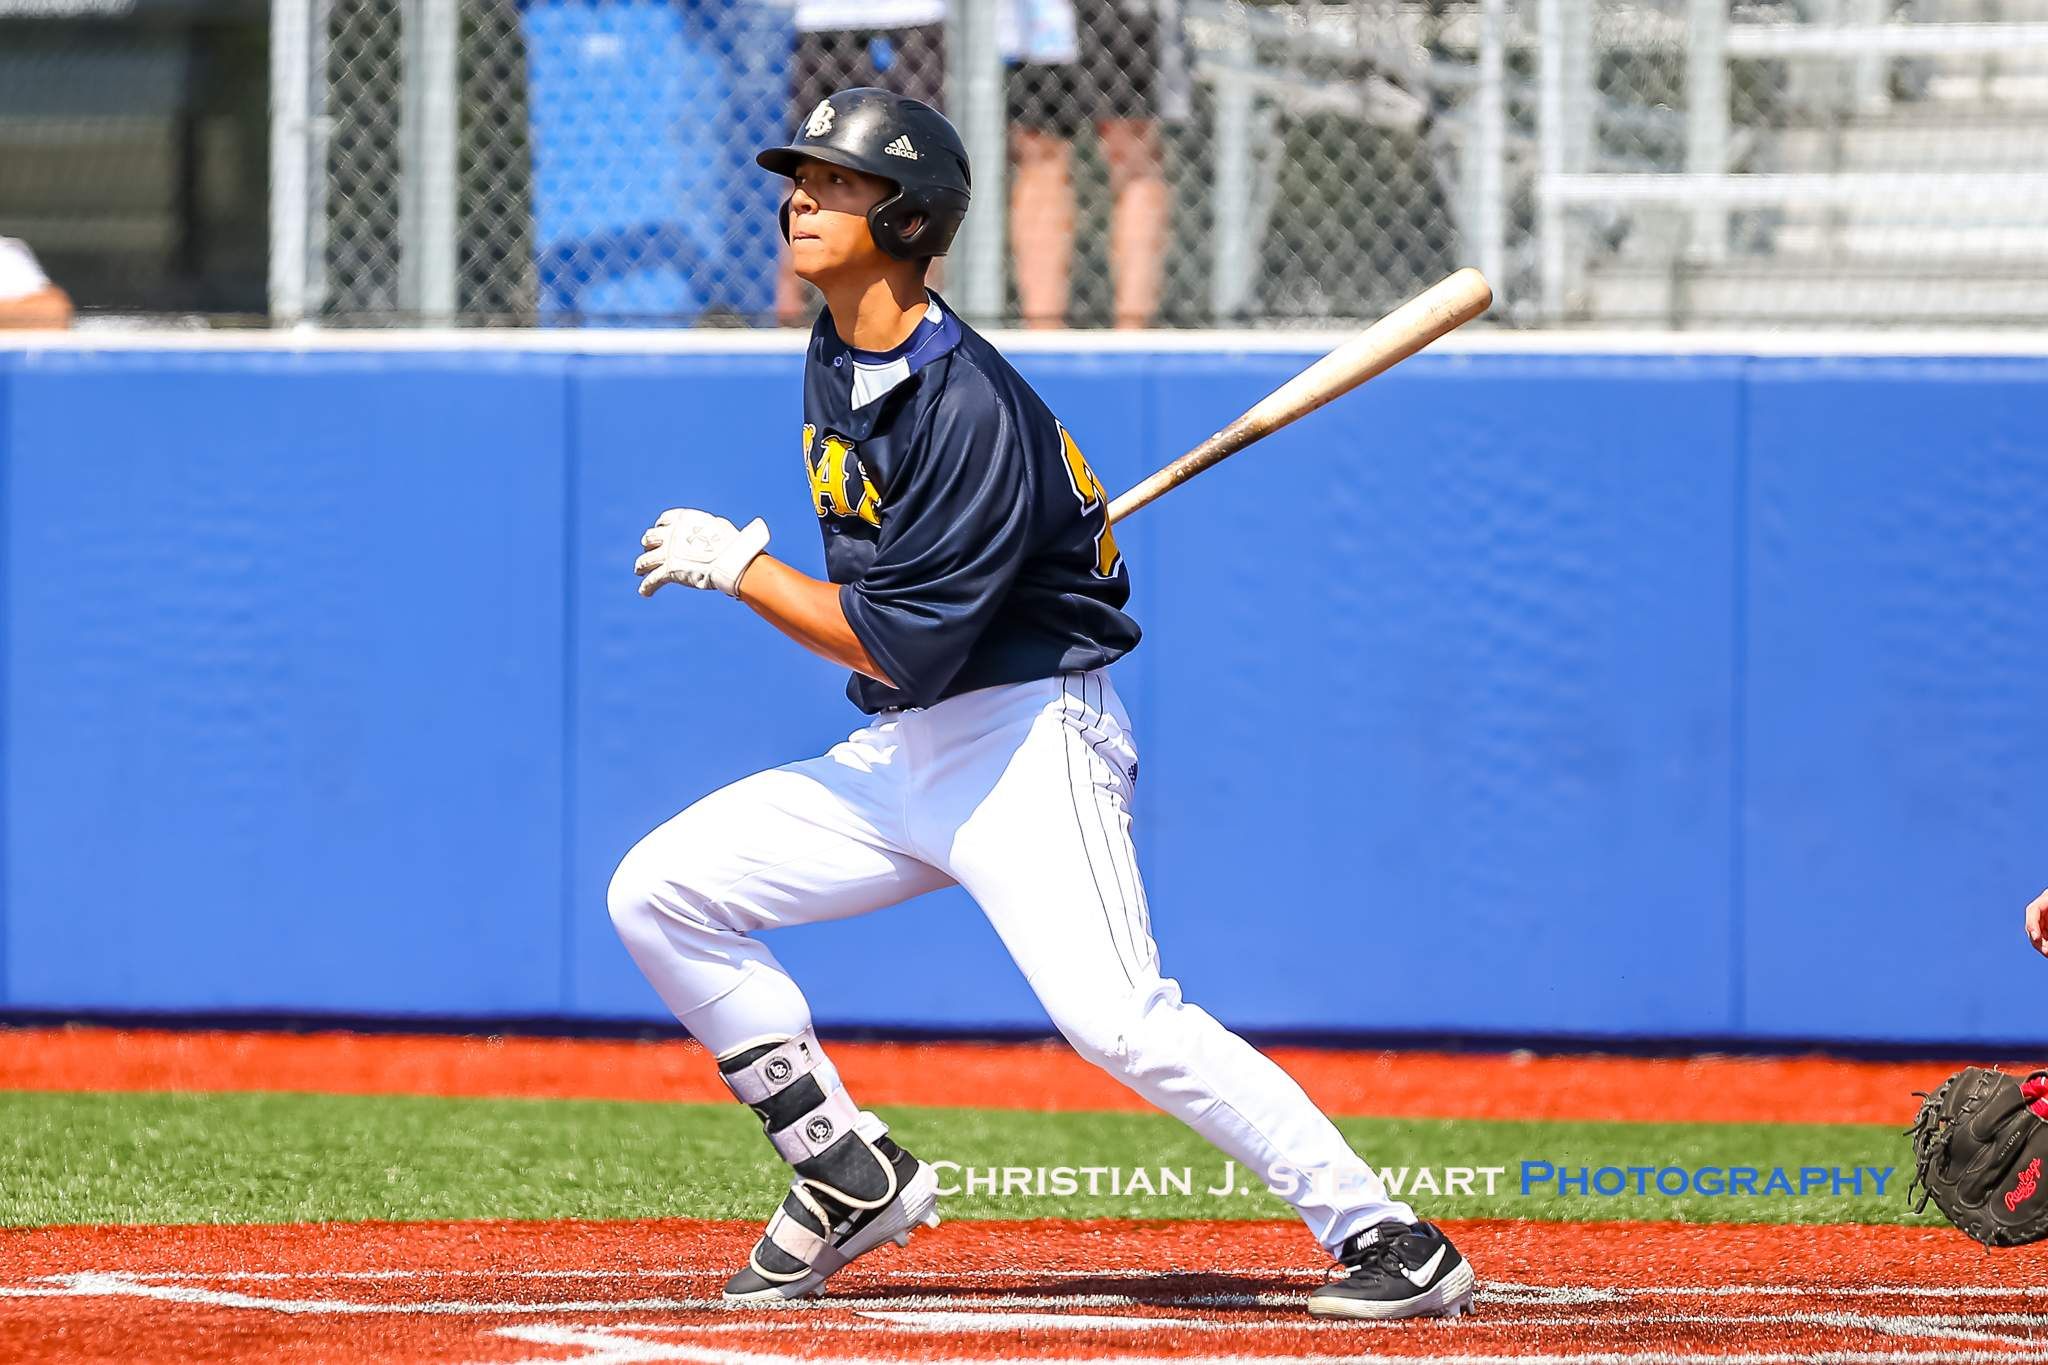 Langley's Justin Thorsteinson would get his team started Saturday with a two-RBI double (Photo: Christian J. Stewart)